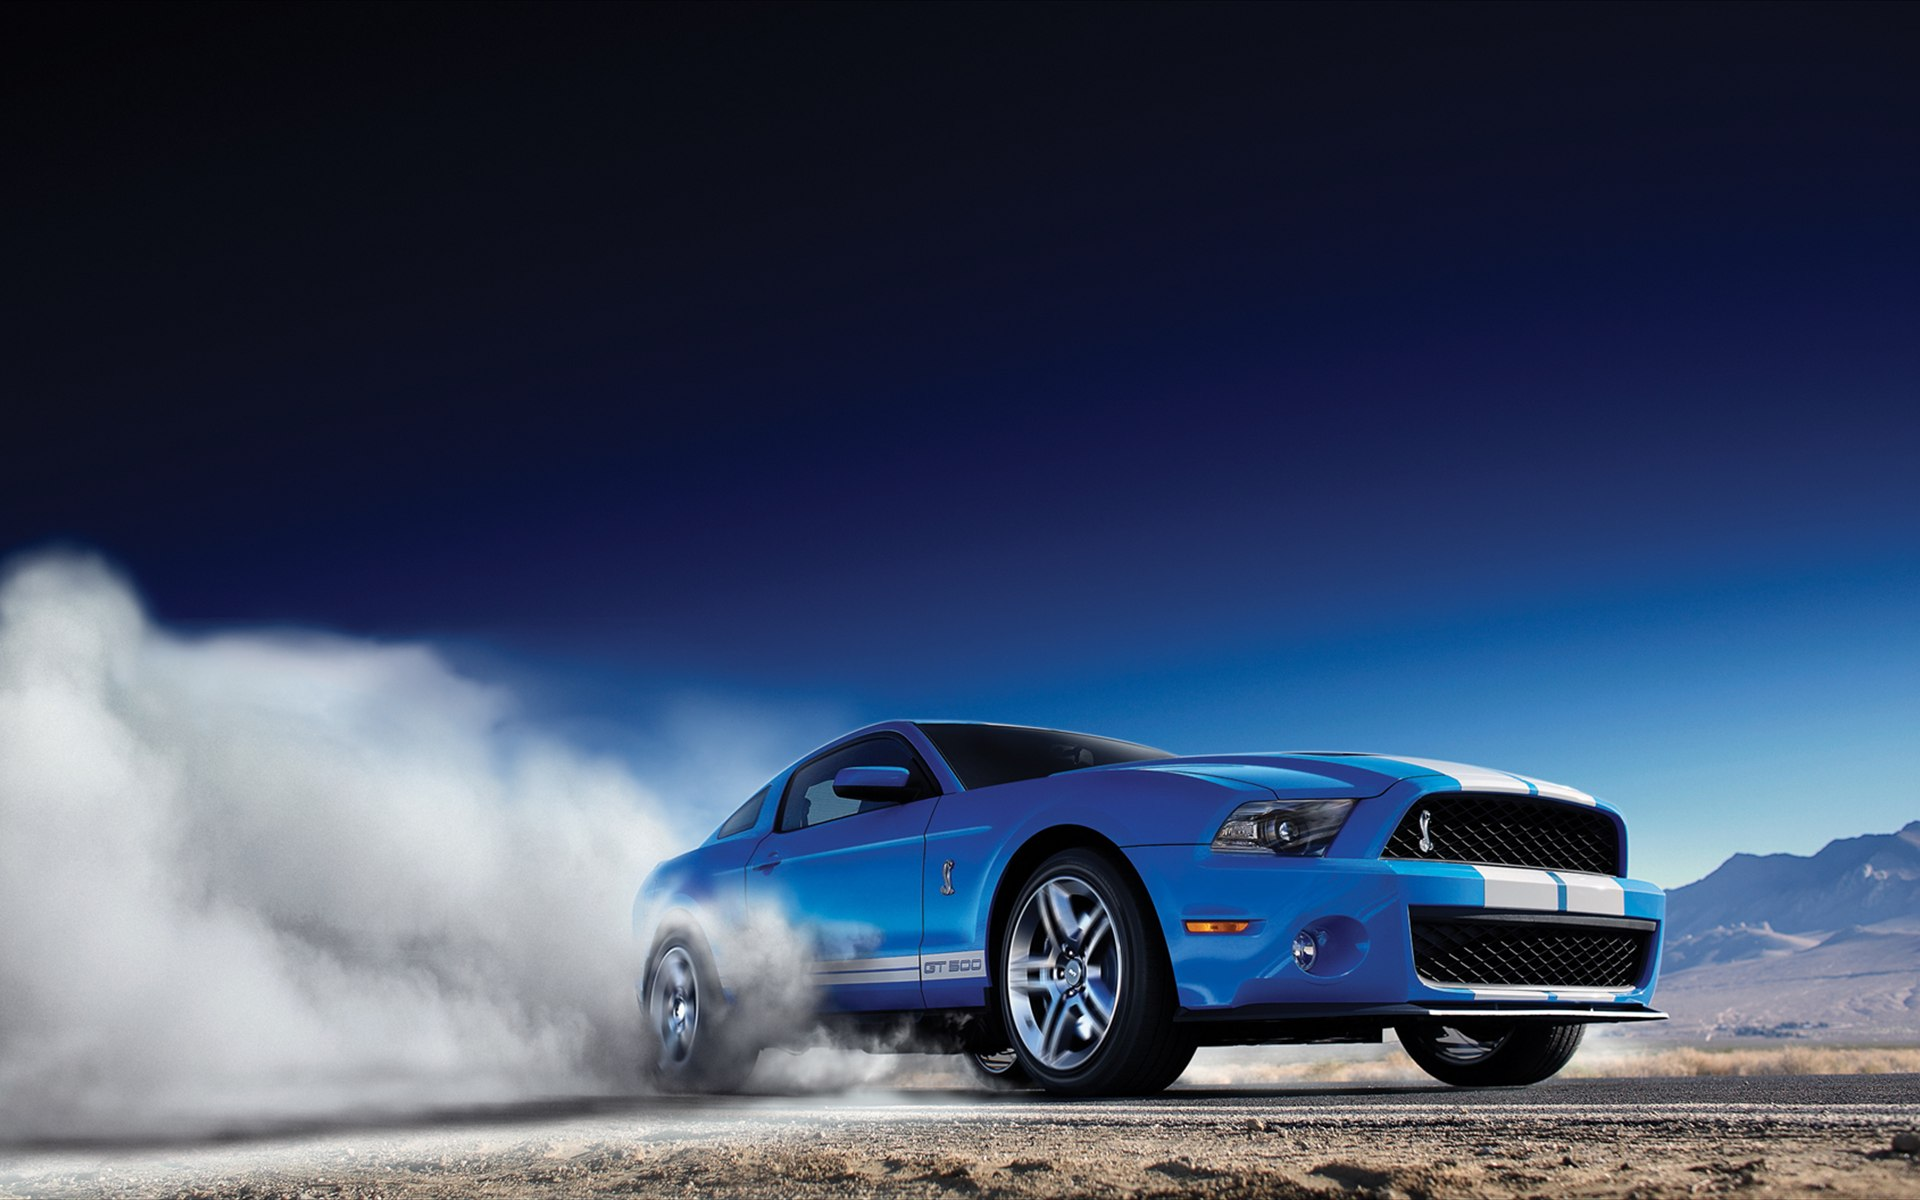 Ford Shelby GT500 2012 Wallpapers HD Wallpapers 1920x1200